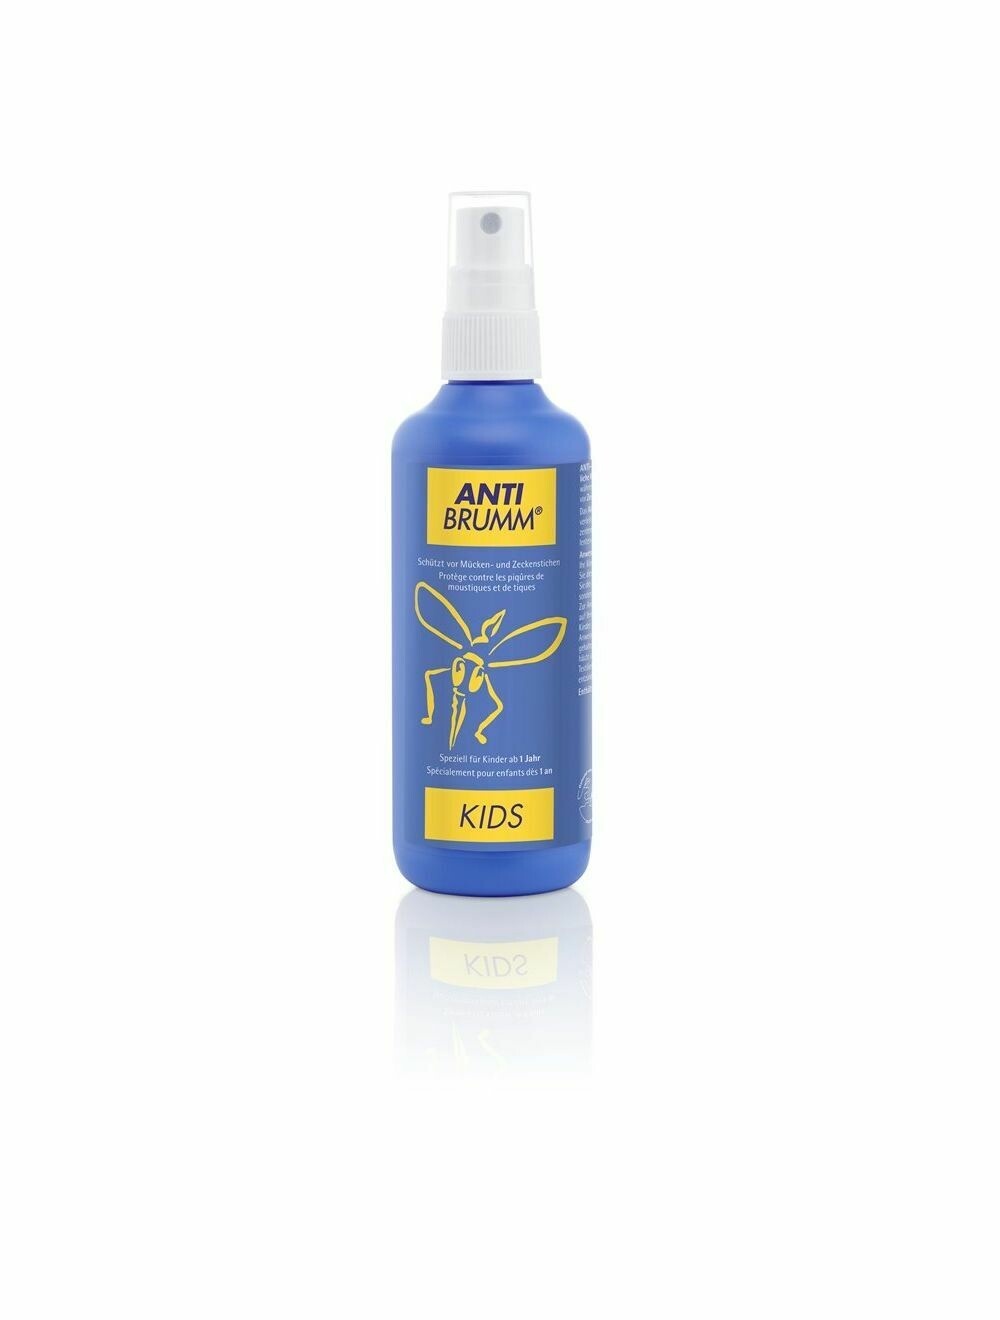 ANTI BRUMM KIDS 150ml